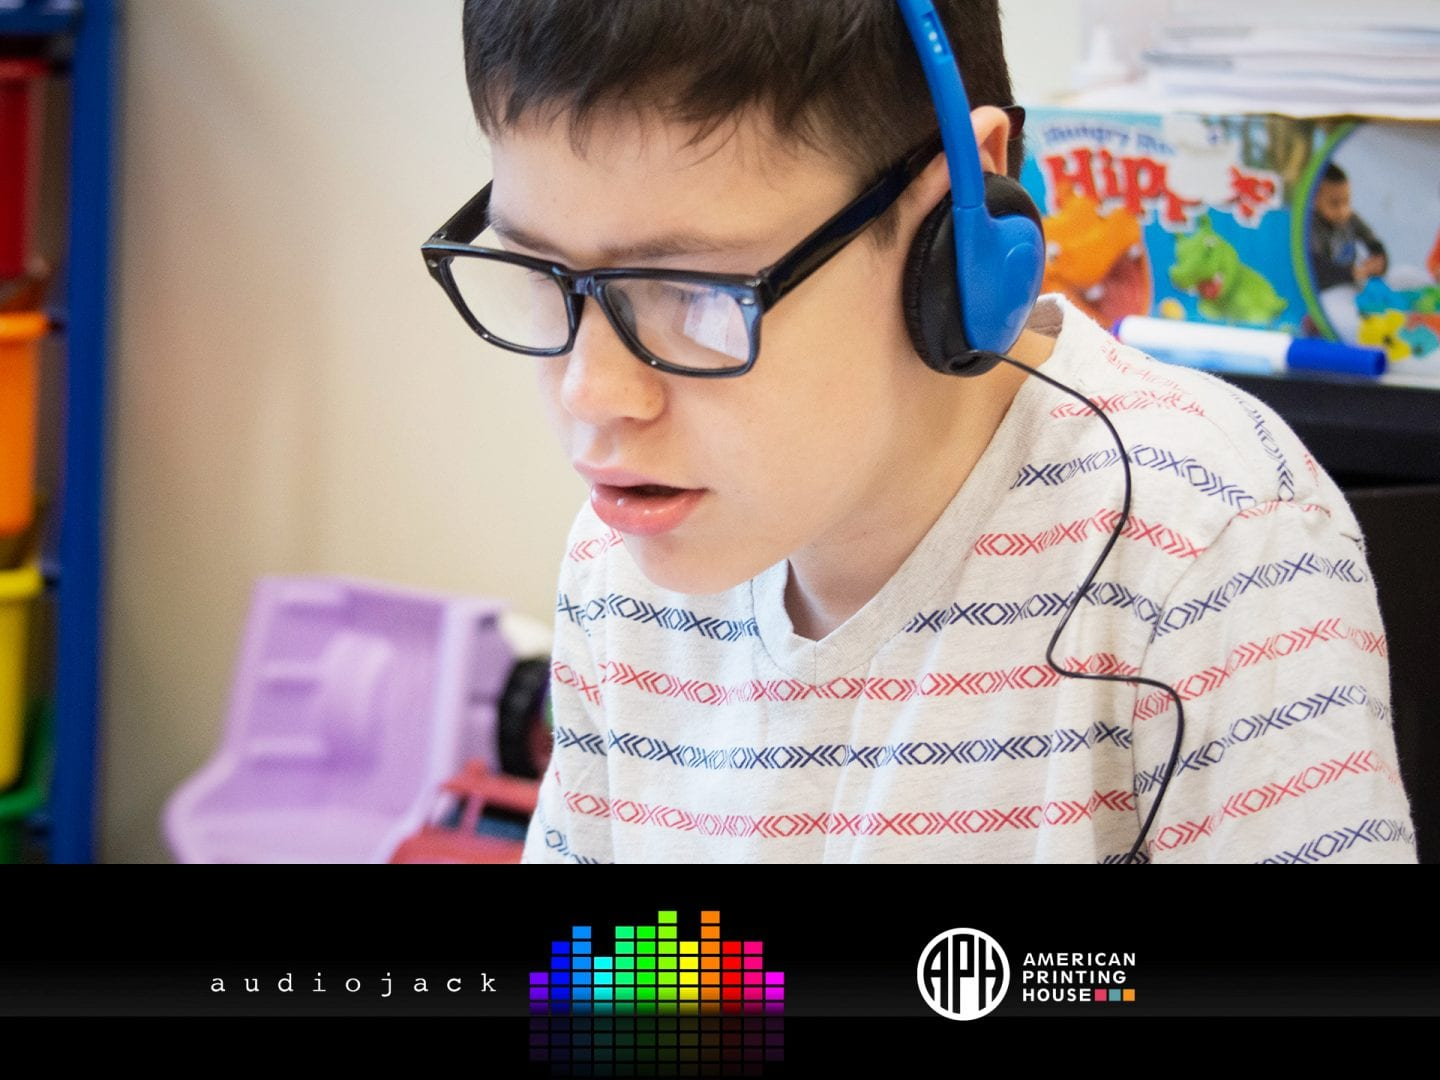 The Audiojack logo and APH logo beneath a photo of a boy engaged in listening to headphones